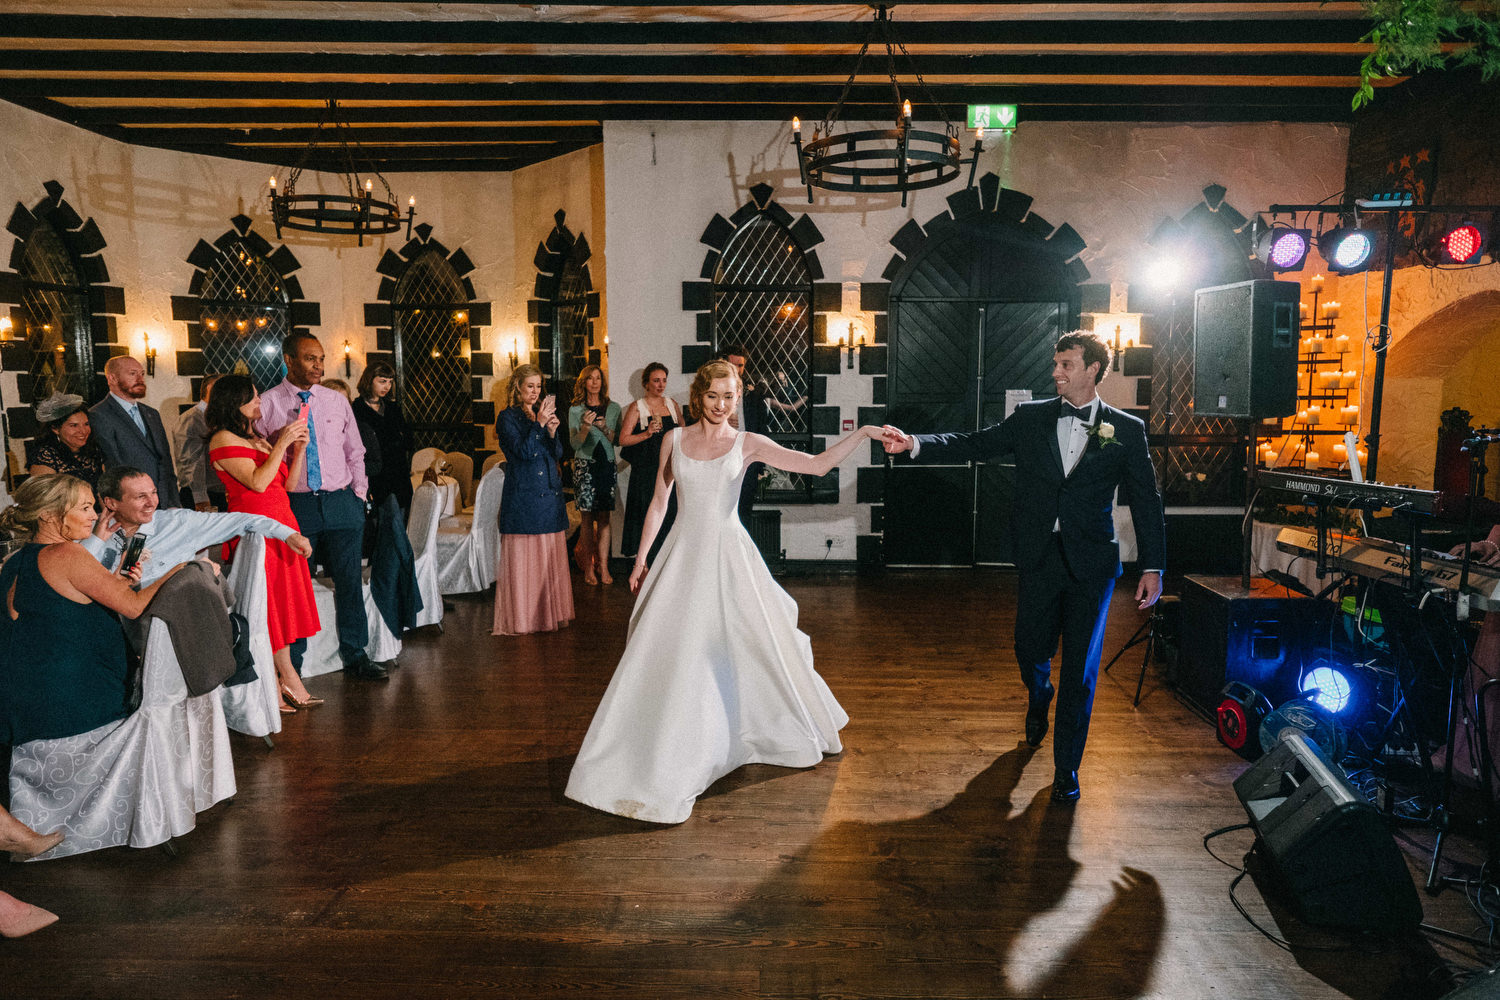 000000000000000000000199_bride_style_vintage_photography_david_mcclelland_ireland_castle_hollywood_kinnity_wedding_photographer_fujifilm